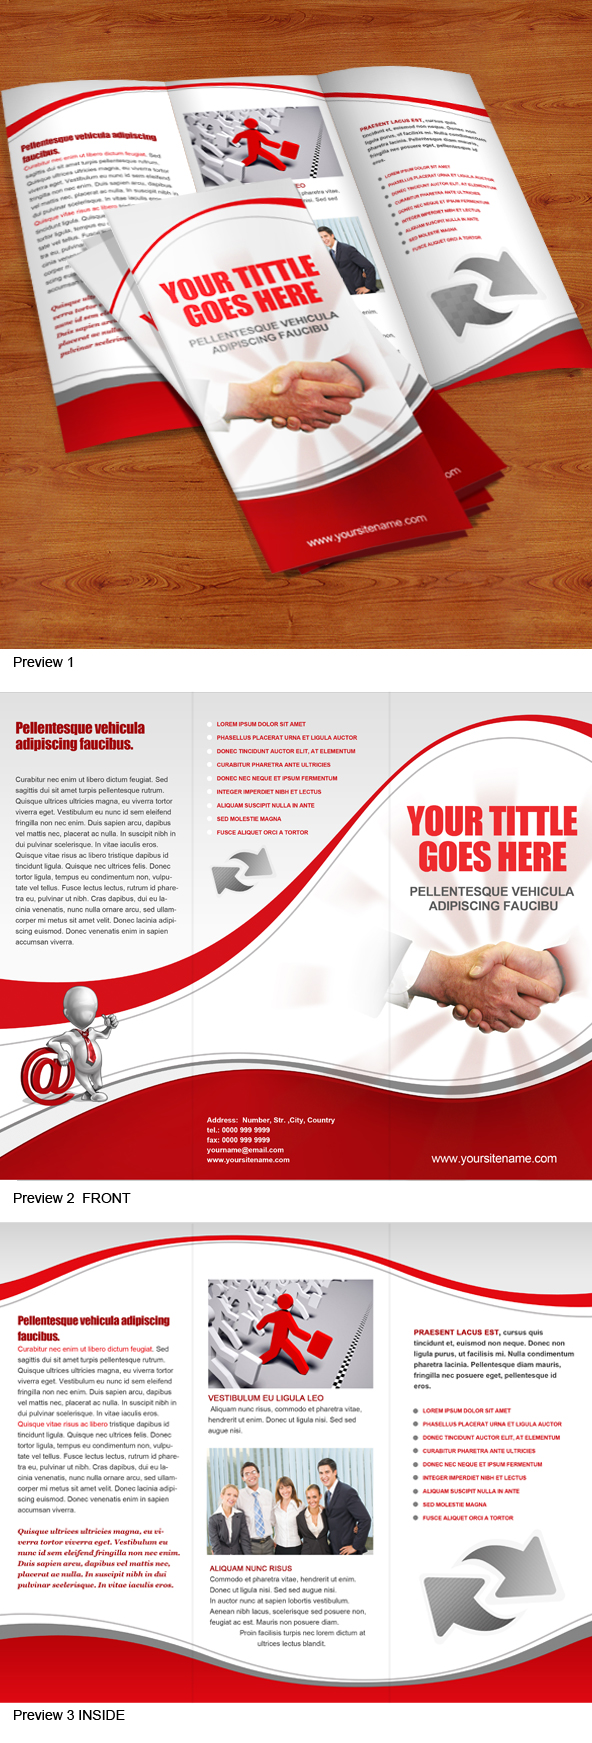 16 psd brochure templates free download images tri fold for 3 fold brochure template psd free download